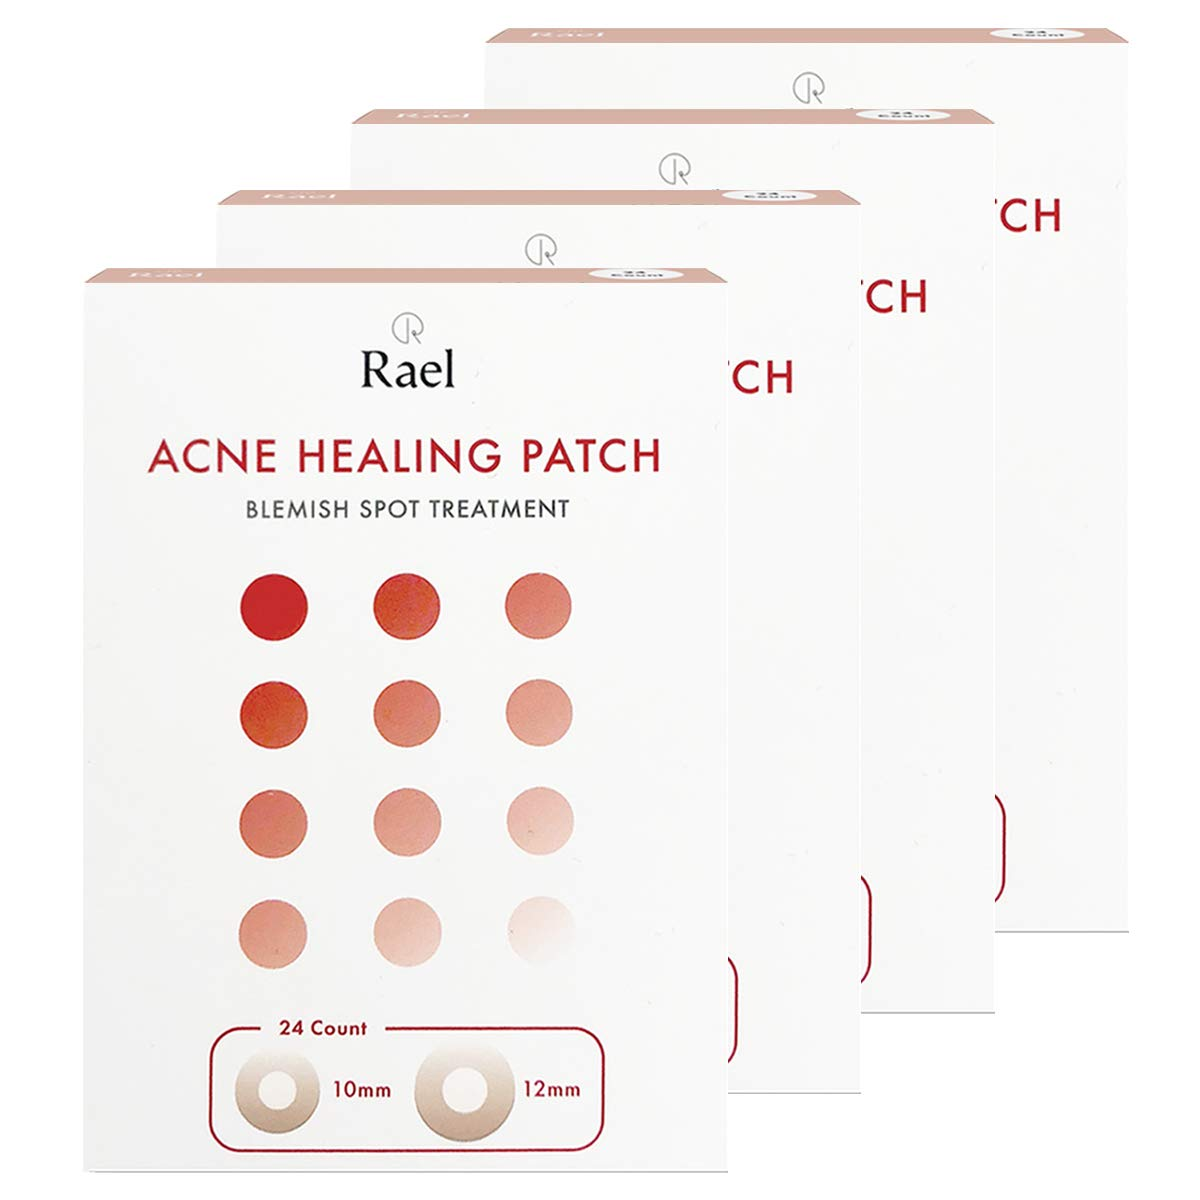 Rael Hydrocolloid Acne Pimple Healing Patch (4 packs)